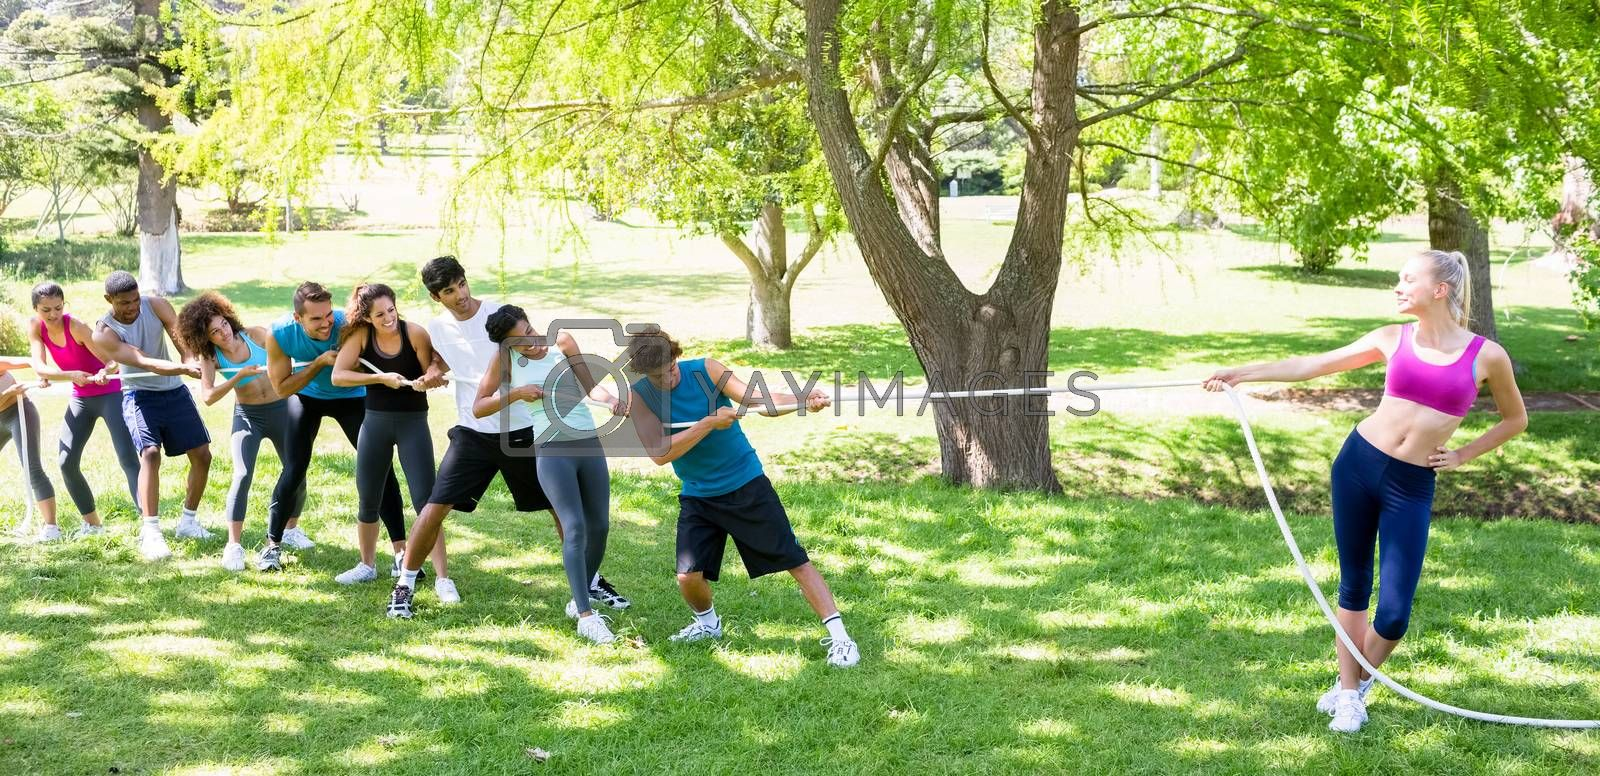 Fit woman playing tug of war with group of friends in the park